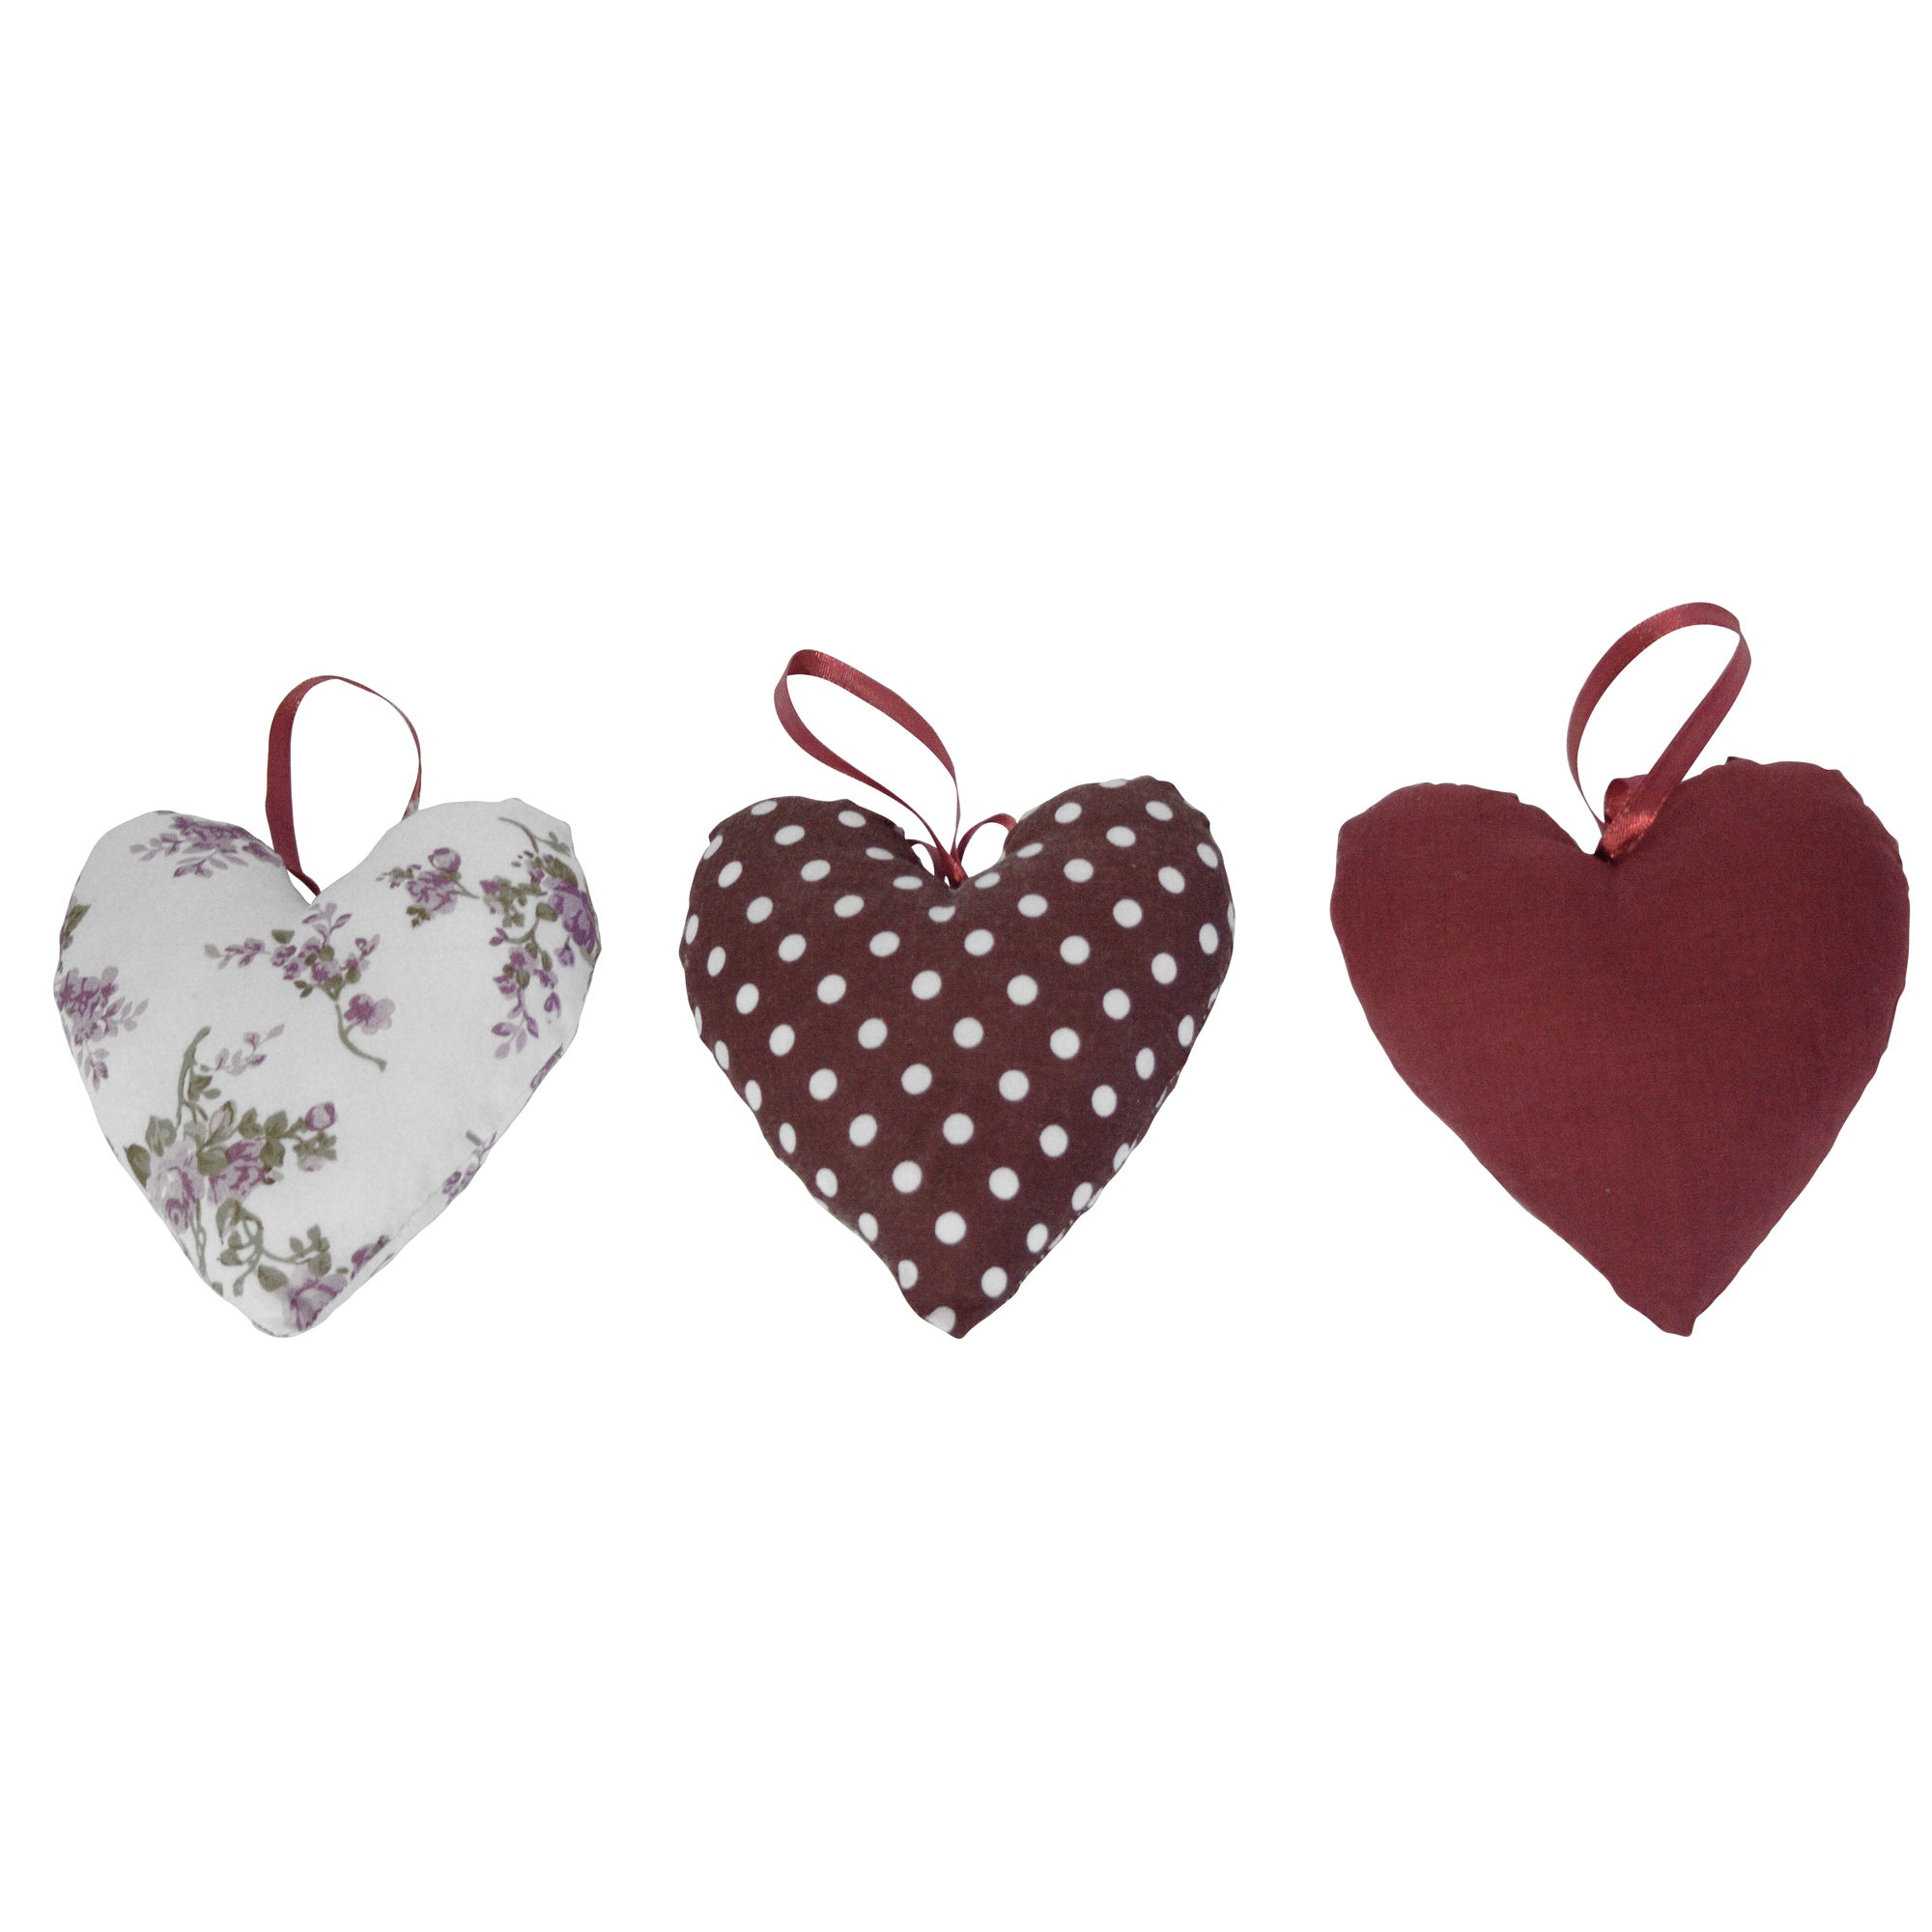 Plum Pudding Collection Filled Heart Cushions